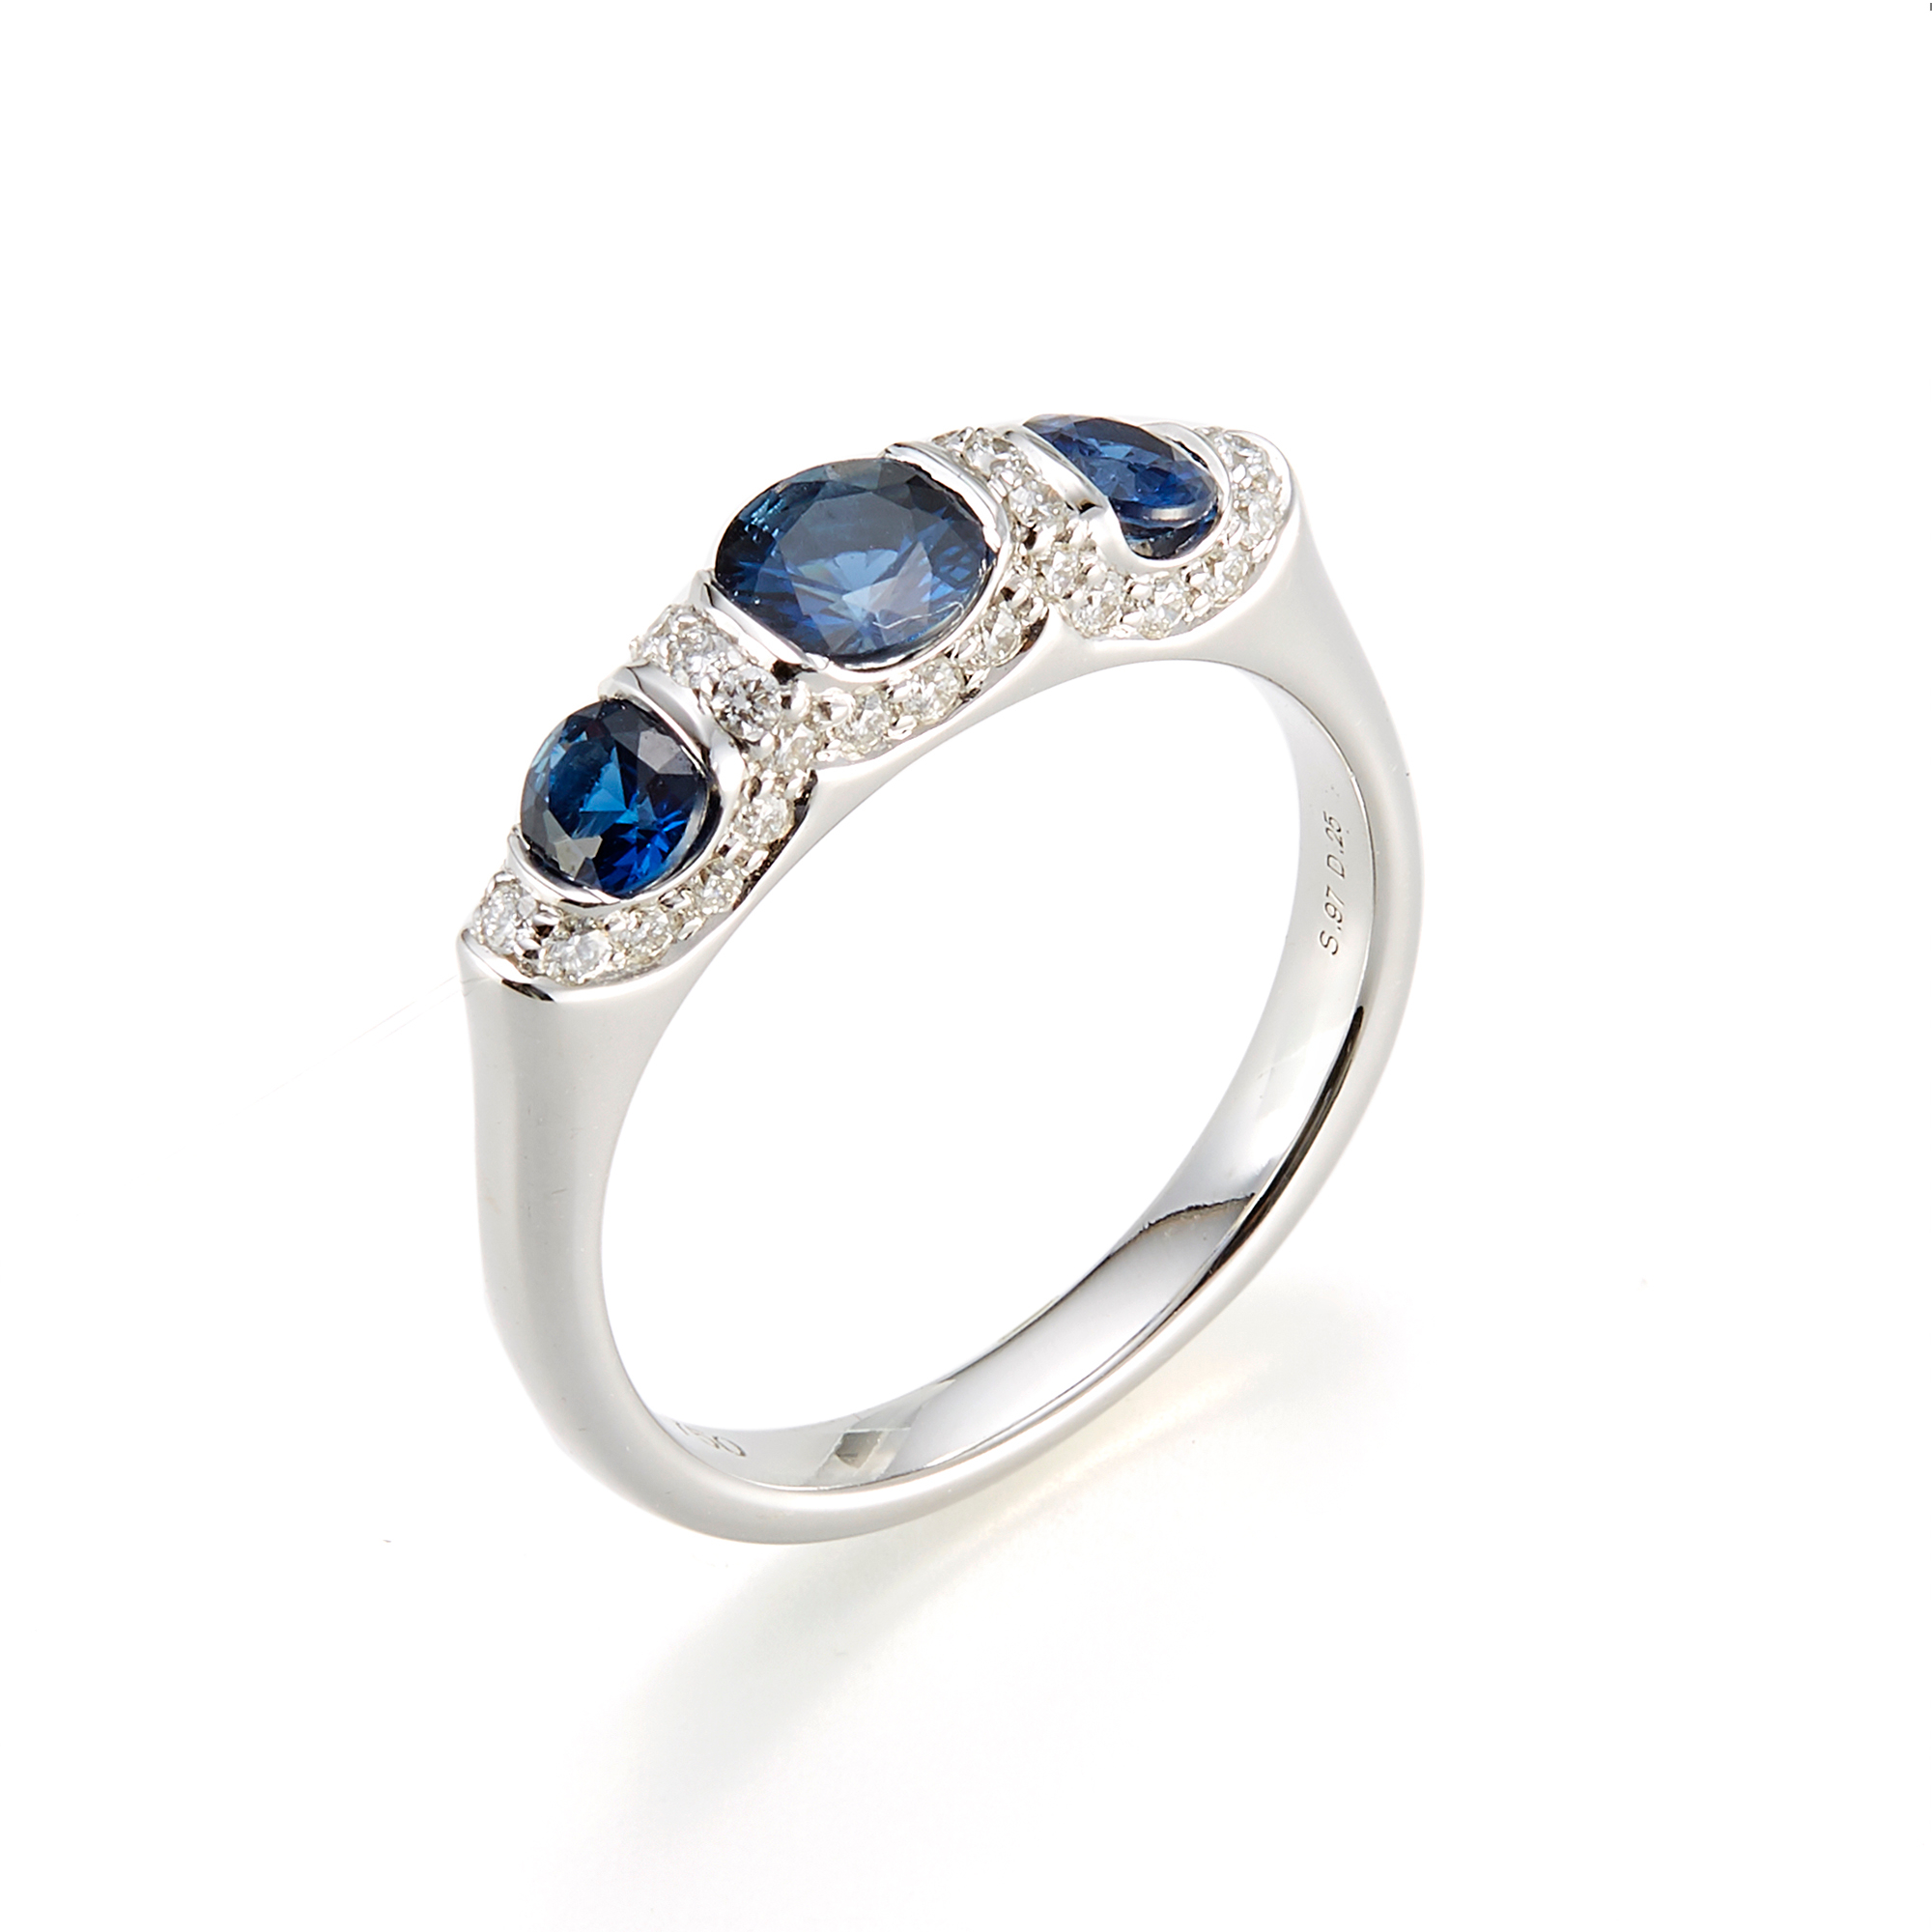 Carelle Three-Stone Sapphire & Diamond Carizma Ring